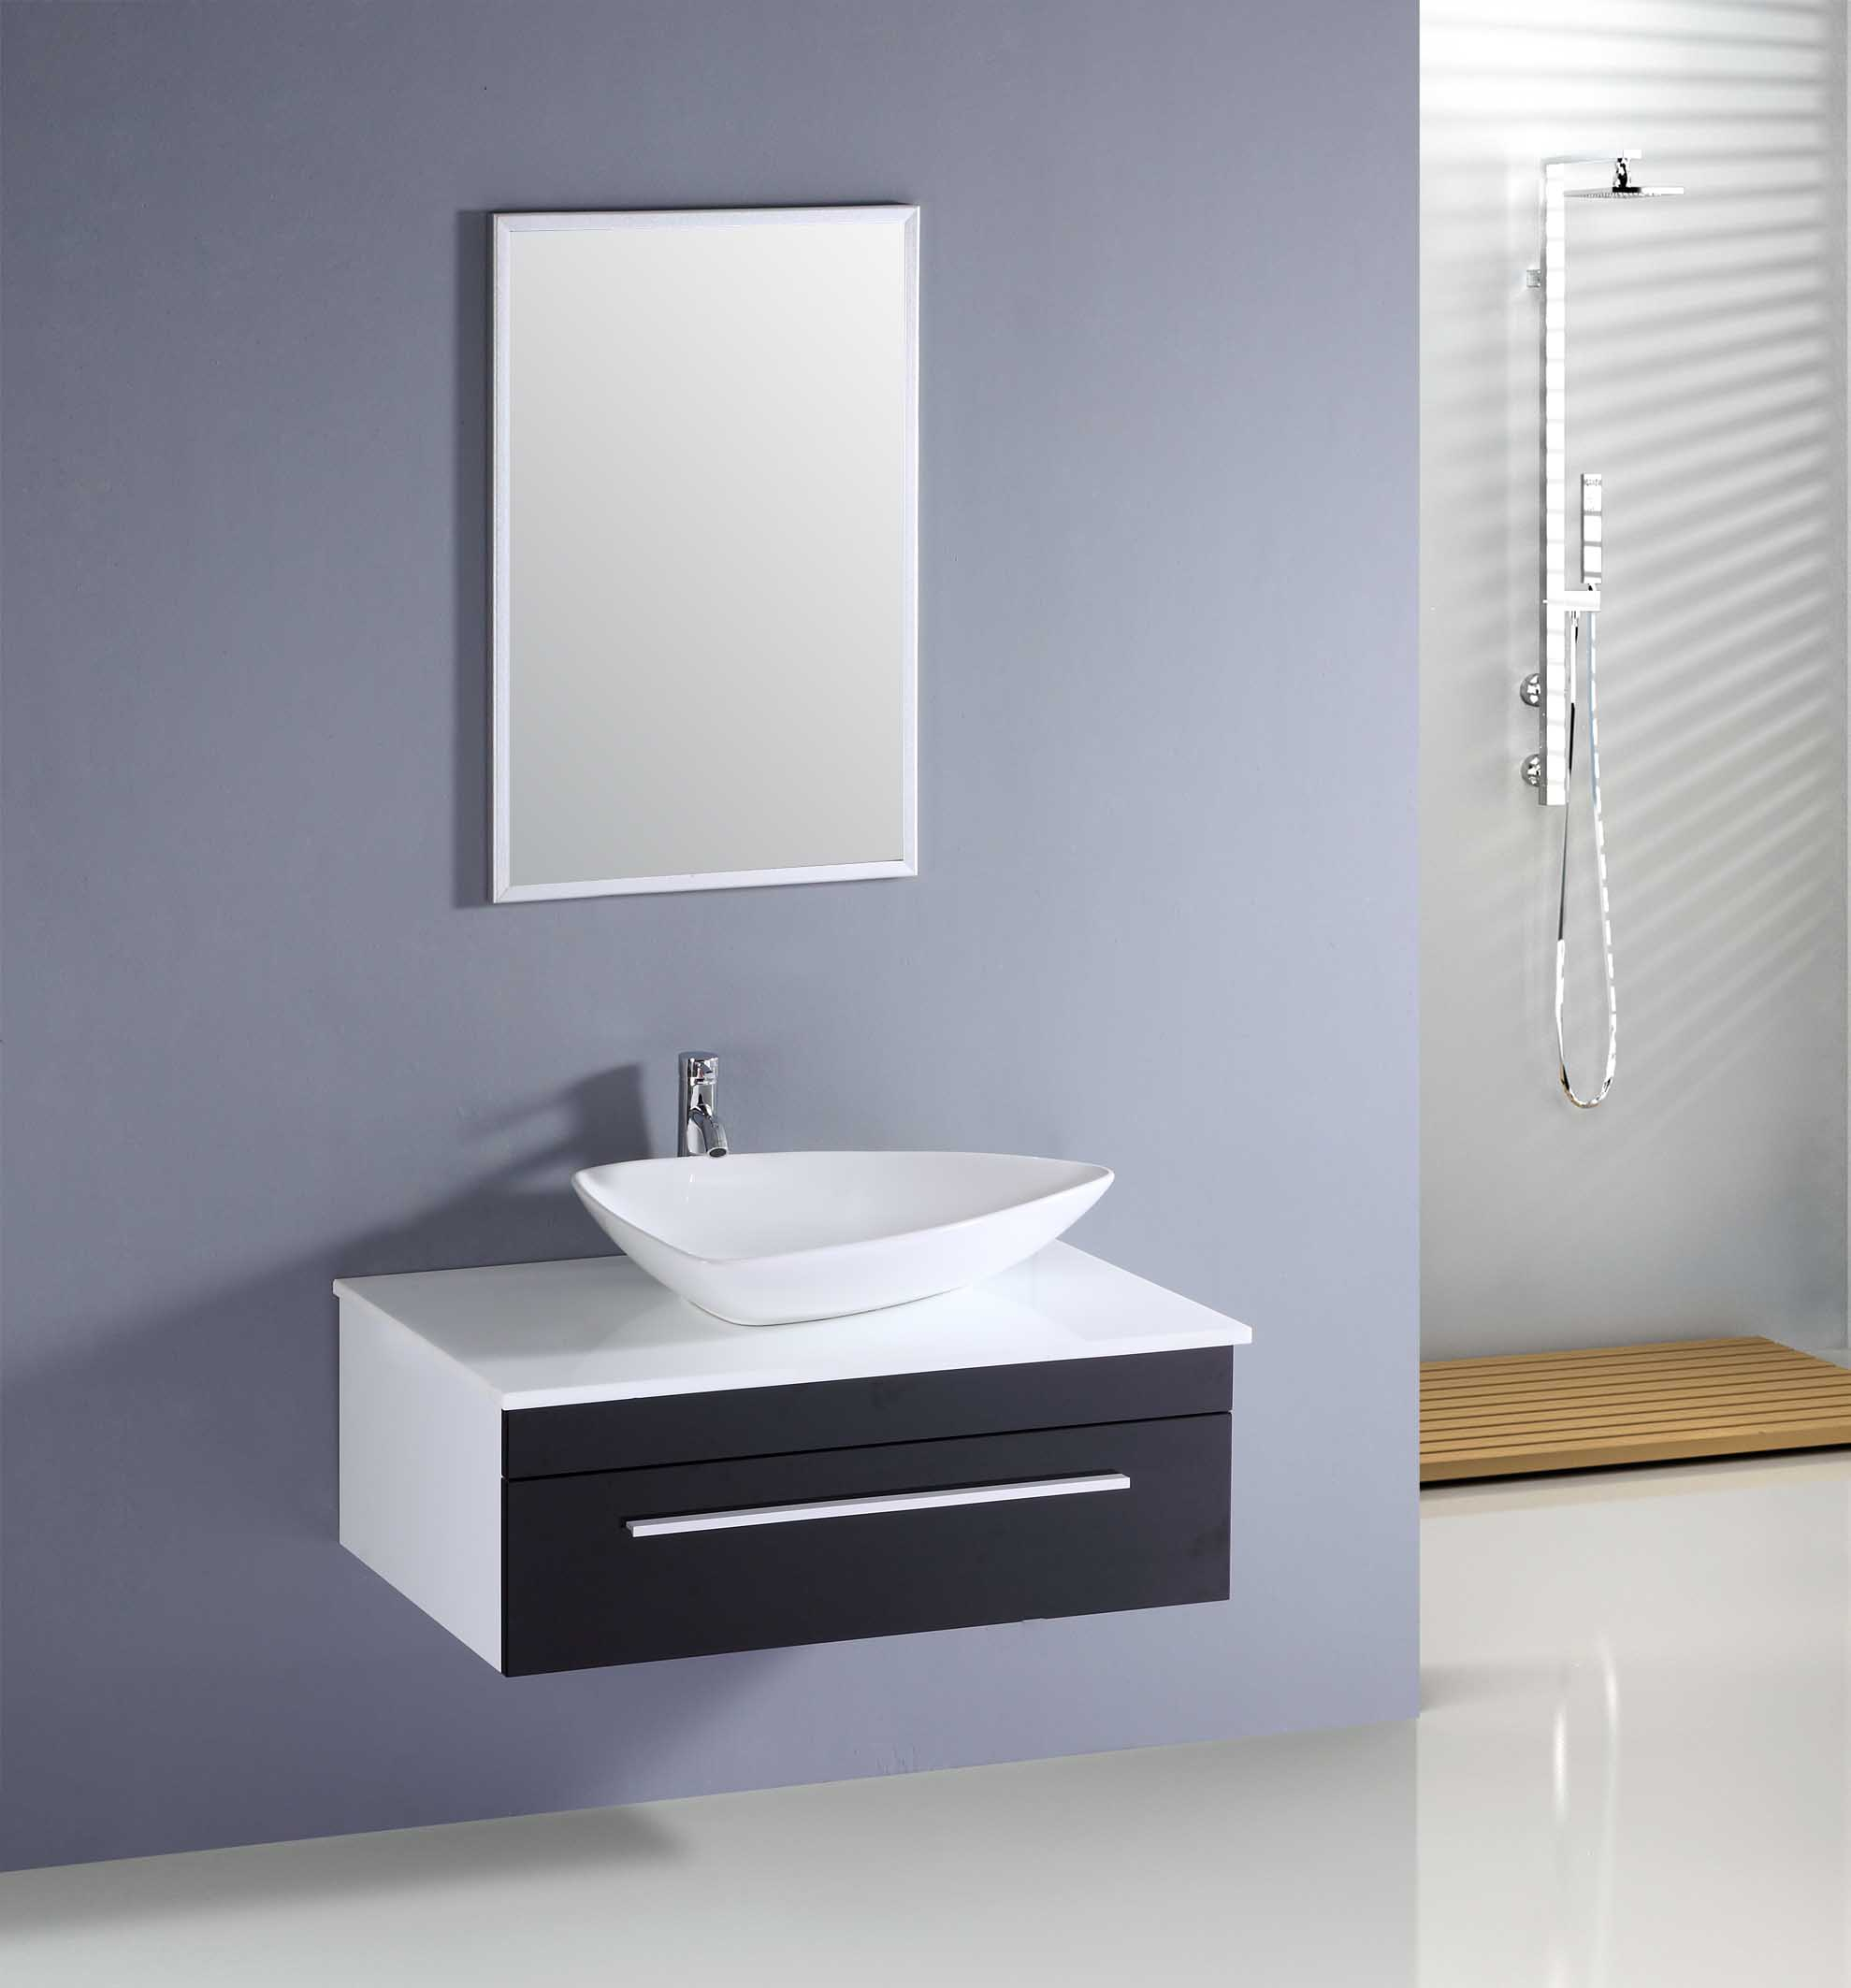 bathroom-glossy-delightful-bathroom-decoration-cabinet-with-mirror